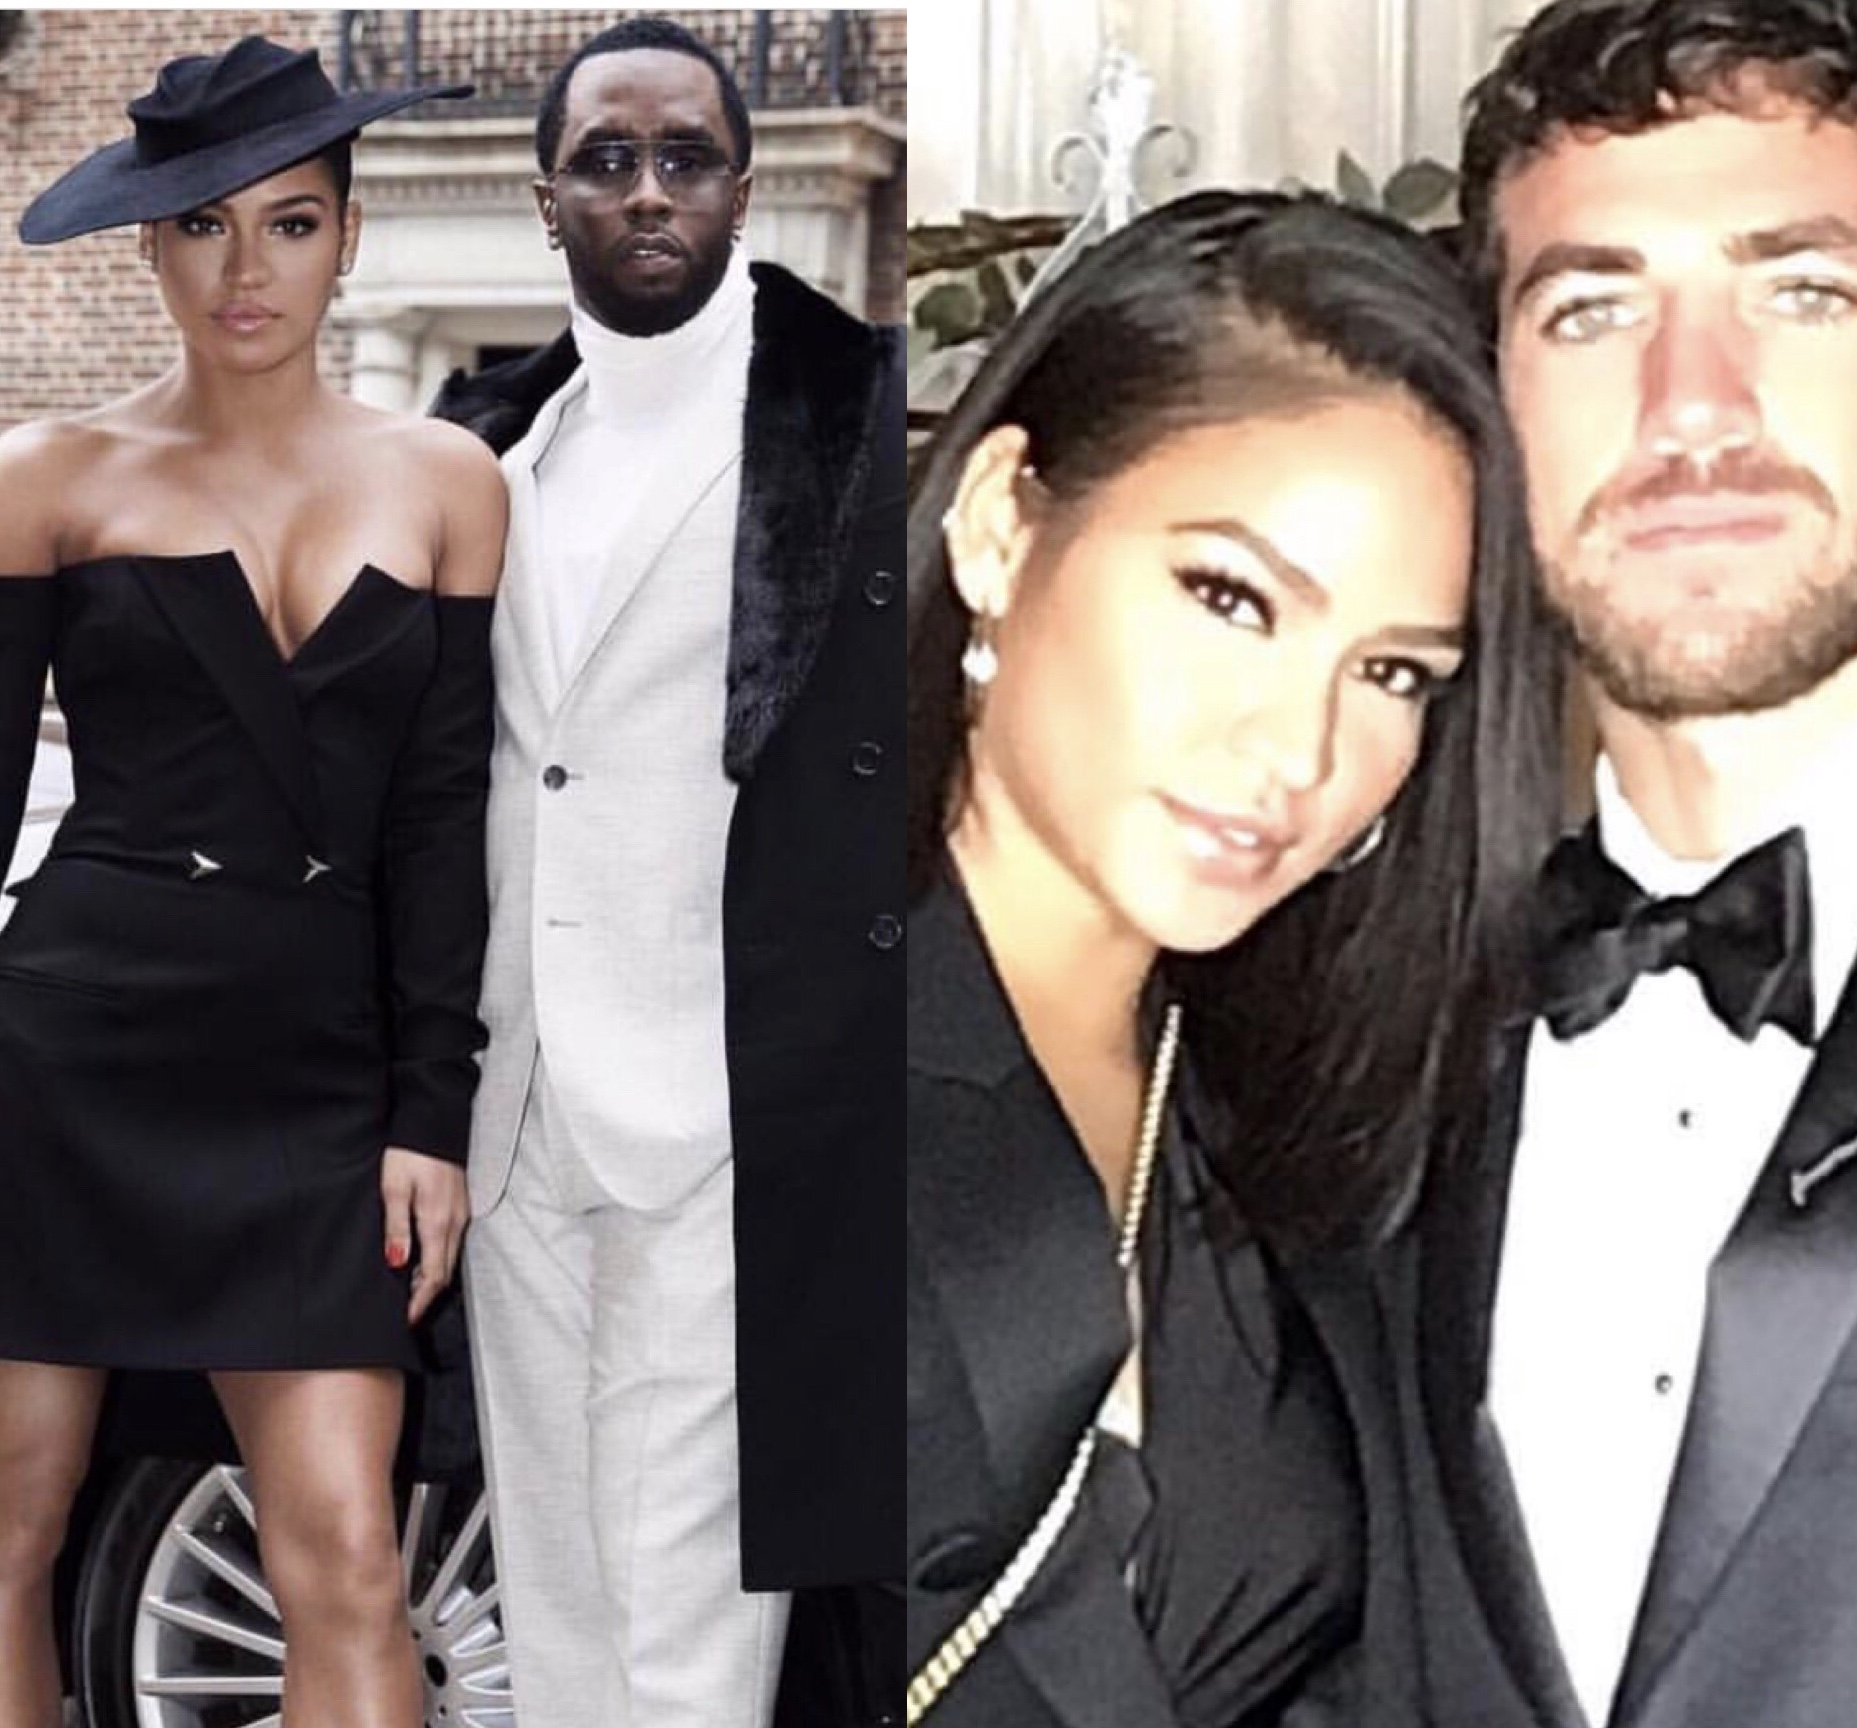 Diddy reacts to Cassie's photo with new man